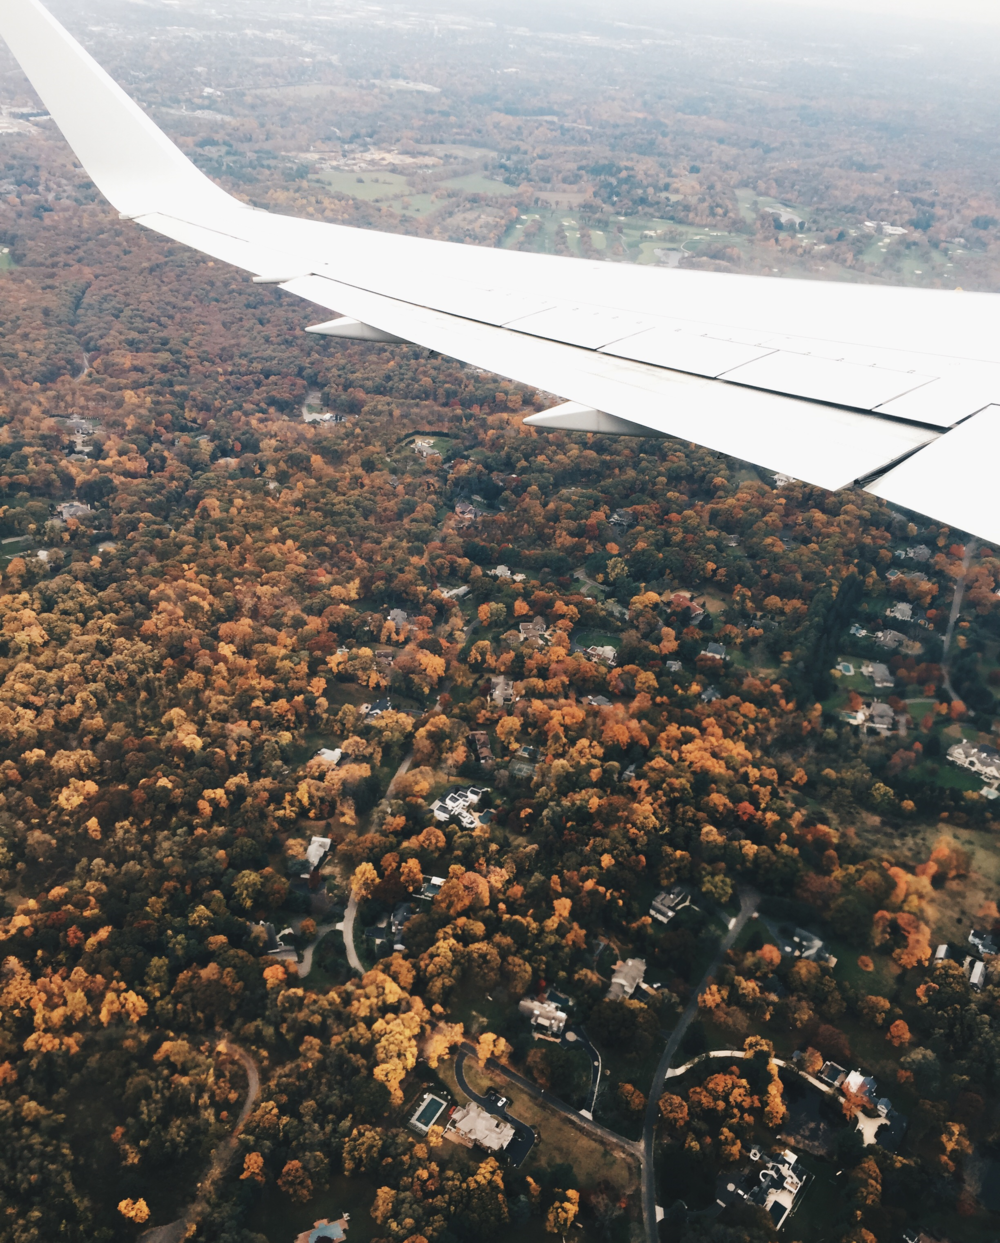 {Flying over some fall foliage on our way back to Boston}